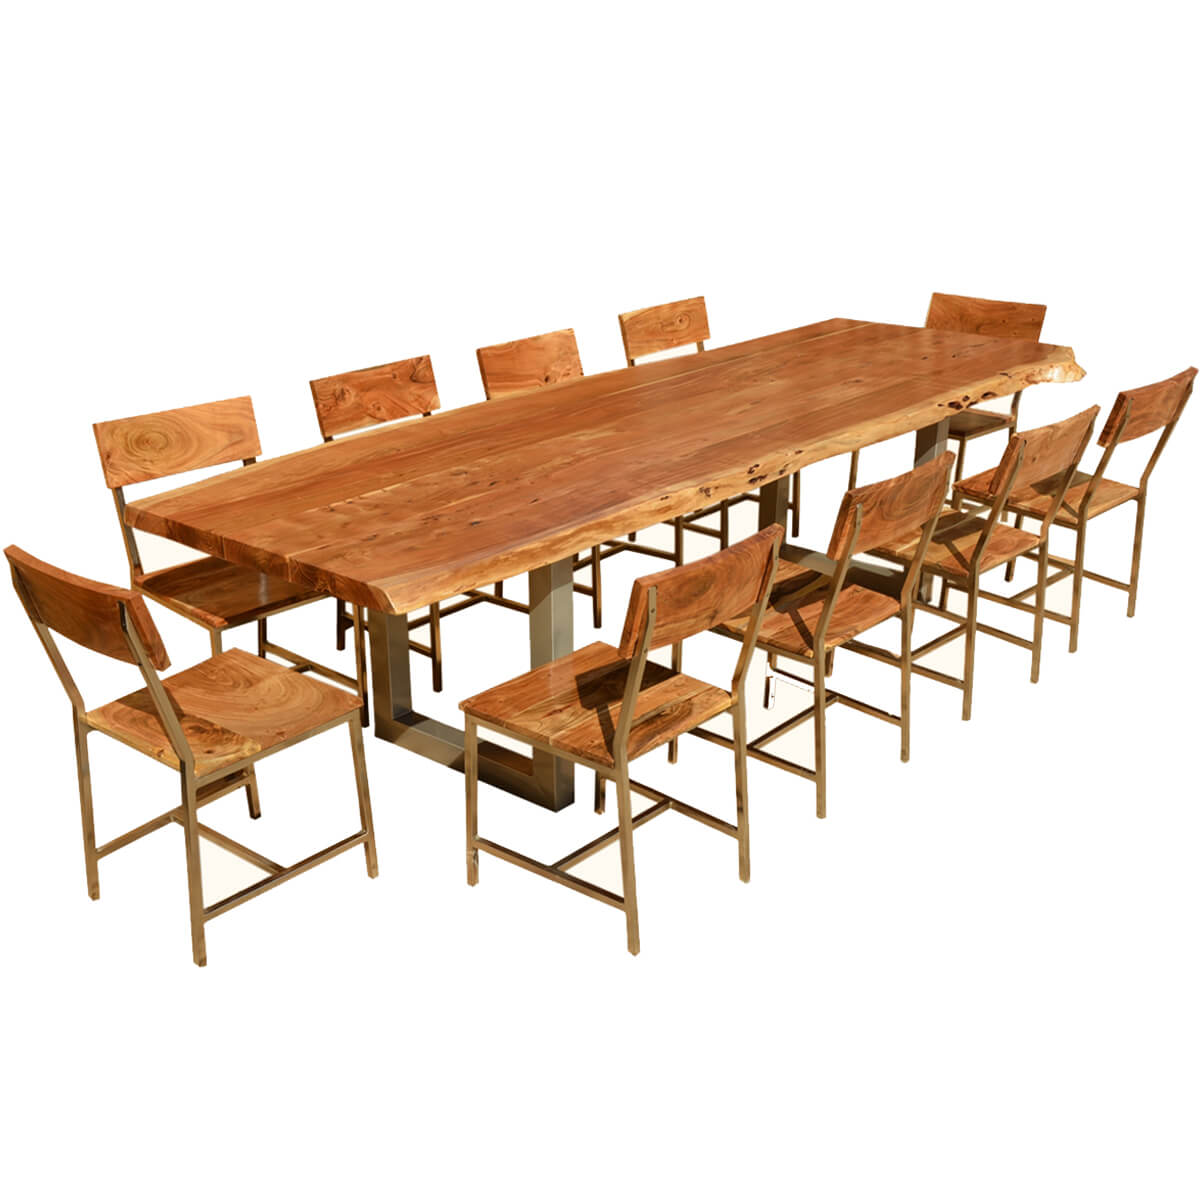 "Dining Table Set For 10: Live Edge Acacia Wood & Iron 117"" Modern Rustic Dining"